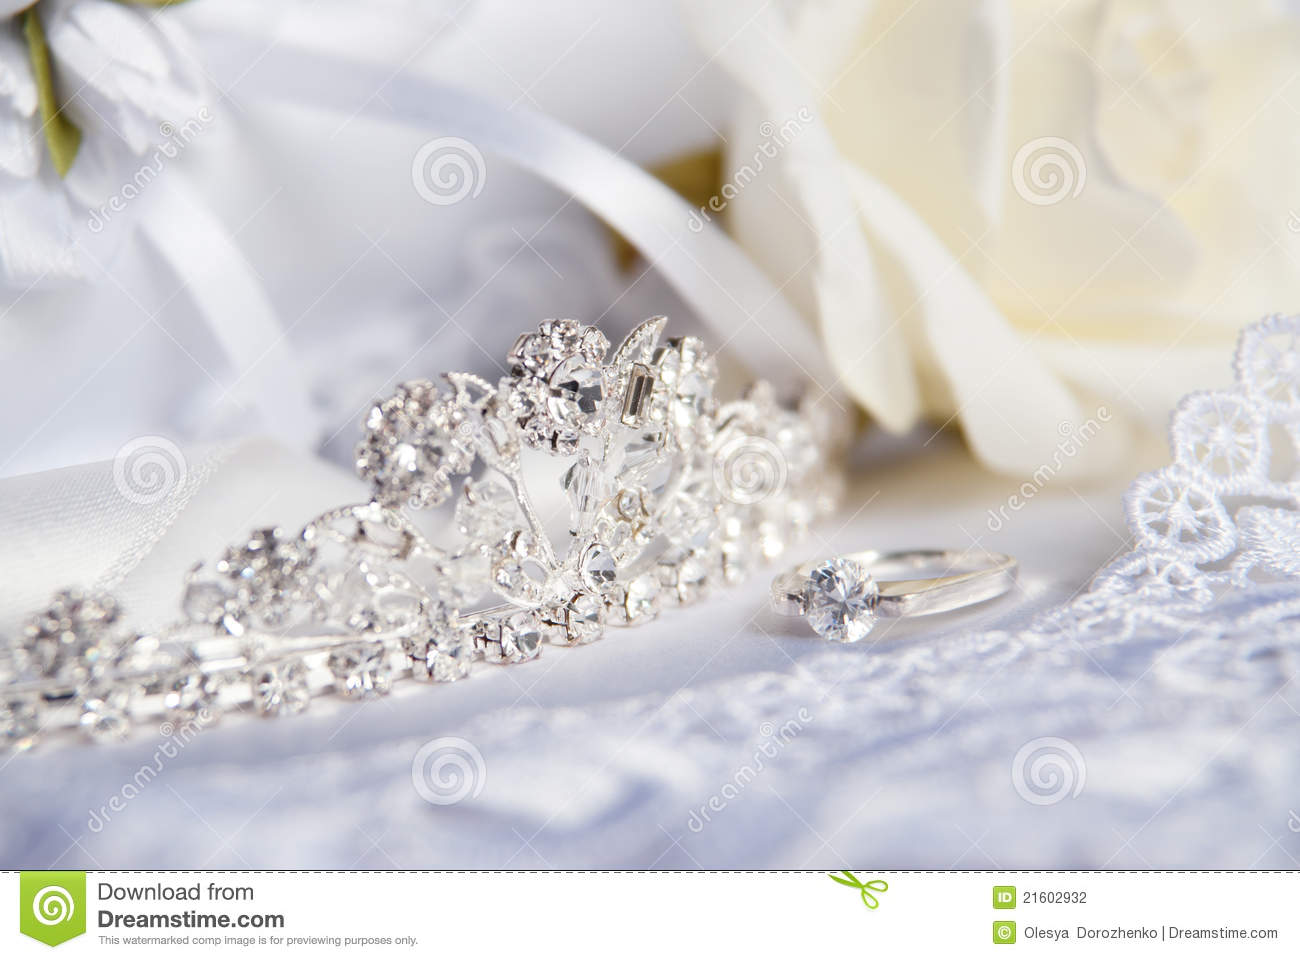 Nice Wedding Ring Designers #2: Wedding-tiara-diadem-bridal-accessories-21602932.jpg